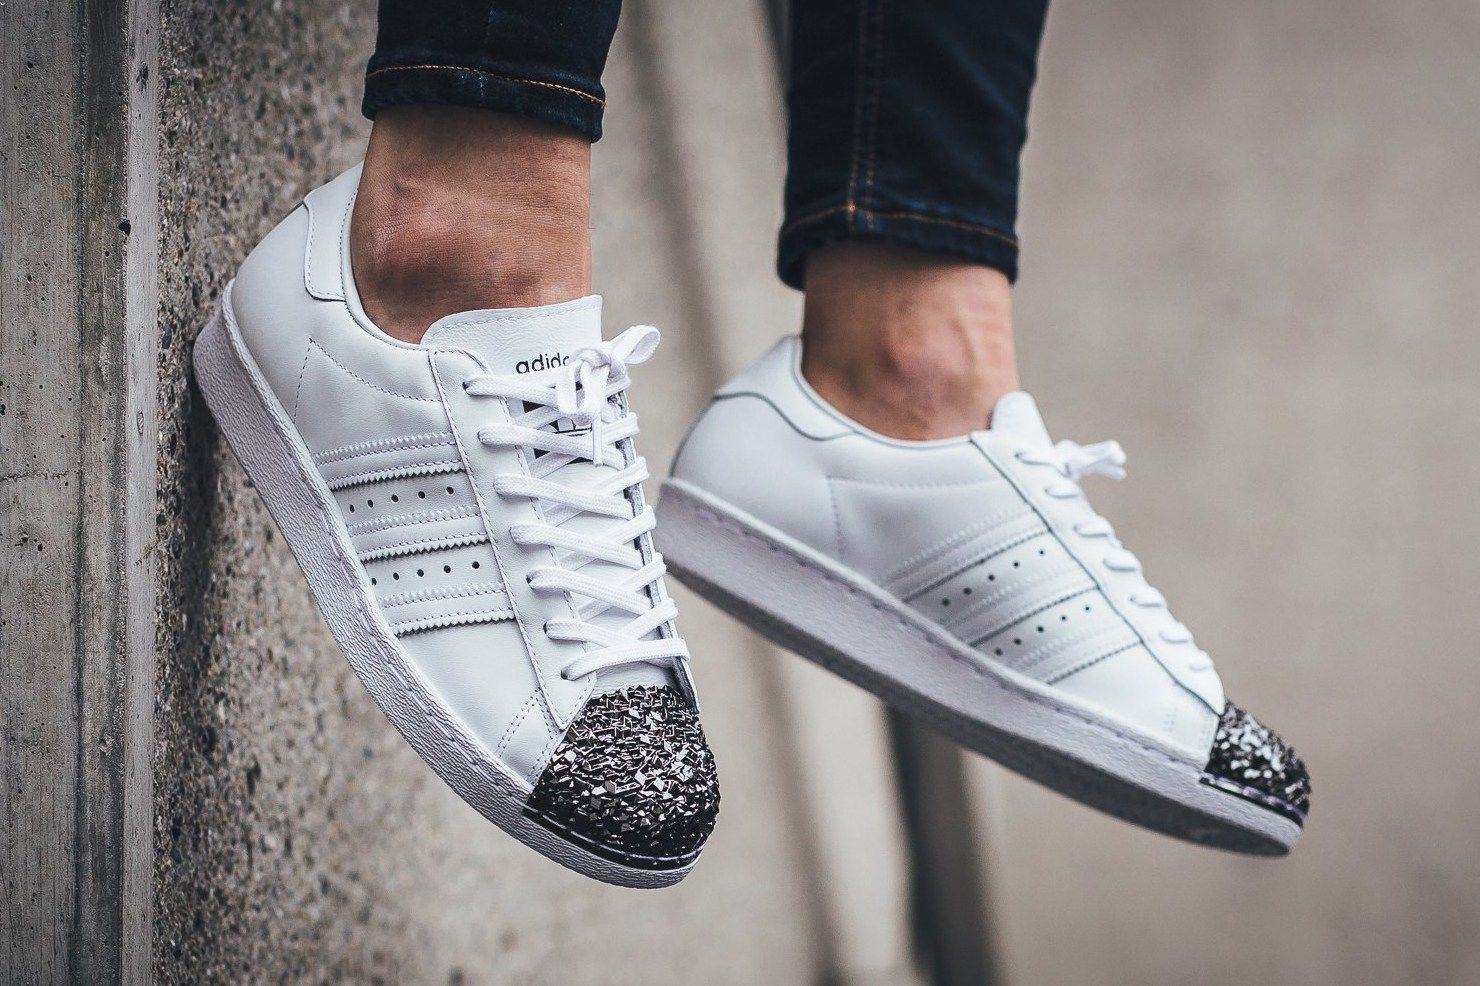 These Adidas Originals Superstar 80s Go Heavy On The Metal Missbish Women S Fashion Fitness Lifestyle Magazine Adidas Originals Superstar Sneakers Adidas Superstar Outfit Men